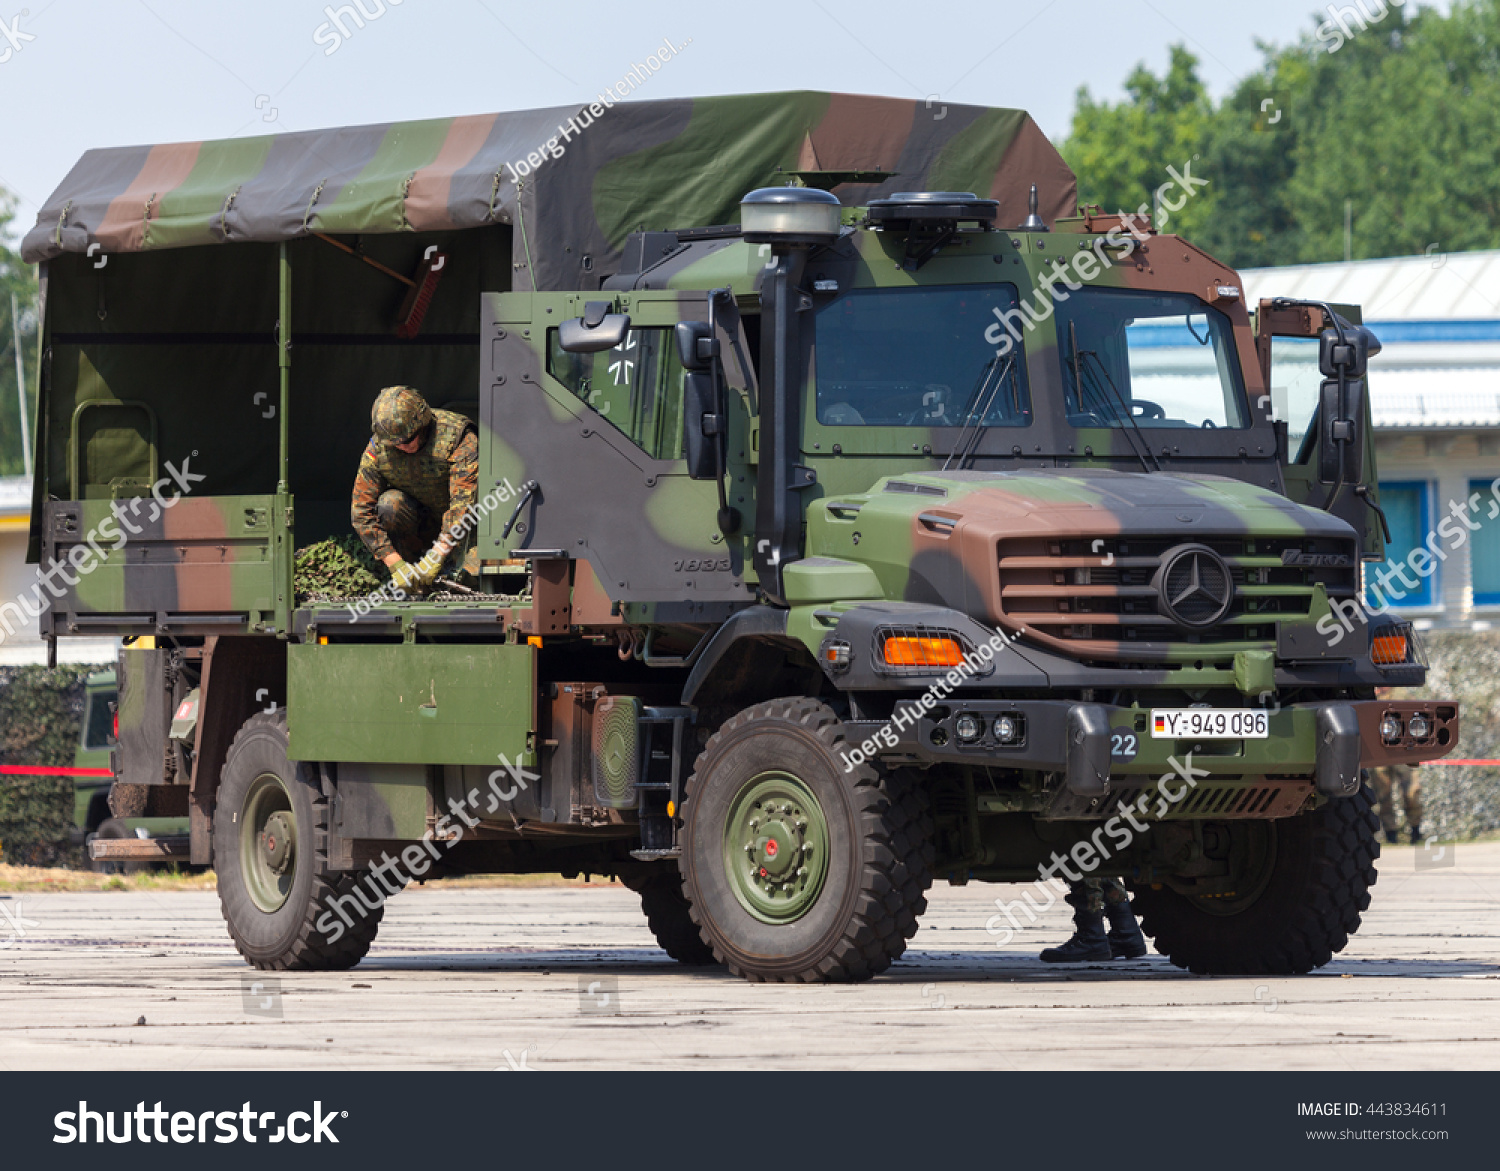 Burg germany june 25 2016 german army truck for Mercedes benz military vehicles